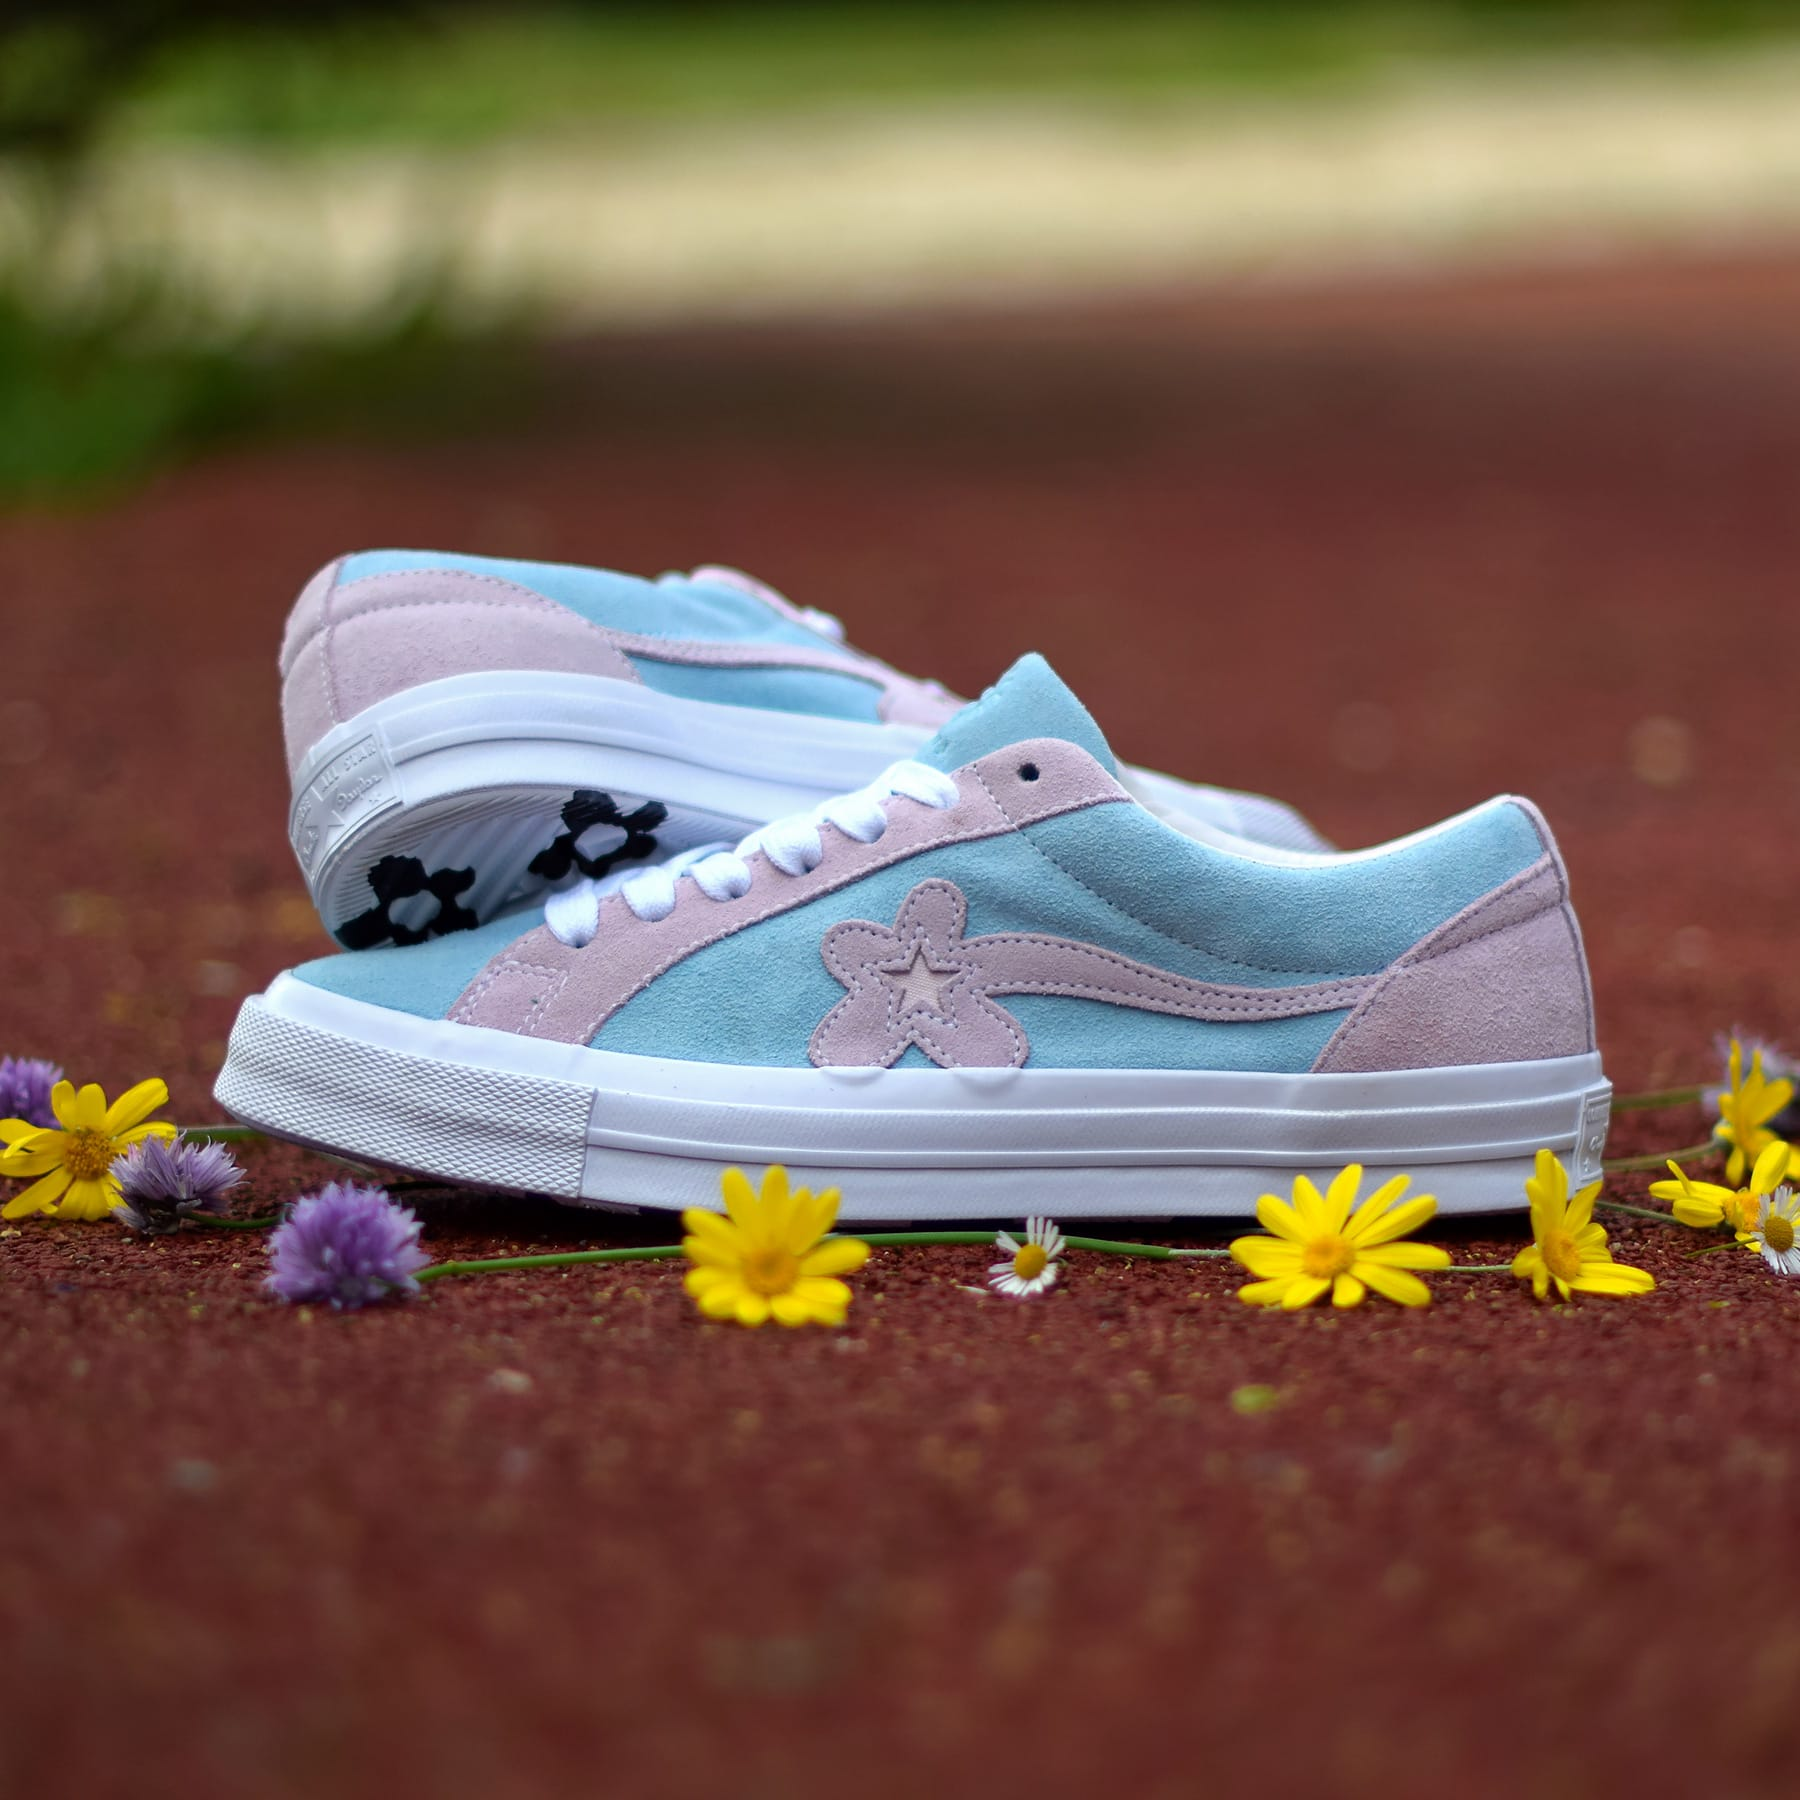 Tyler, the Creator x Converse One Star Golf Le Fleur Release Date Blue Pink